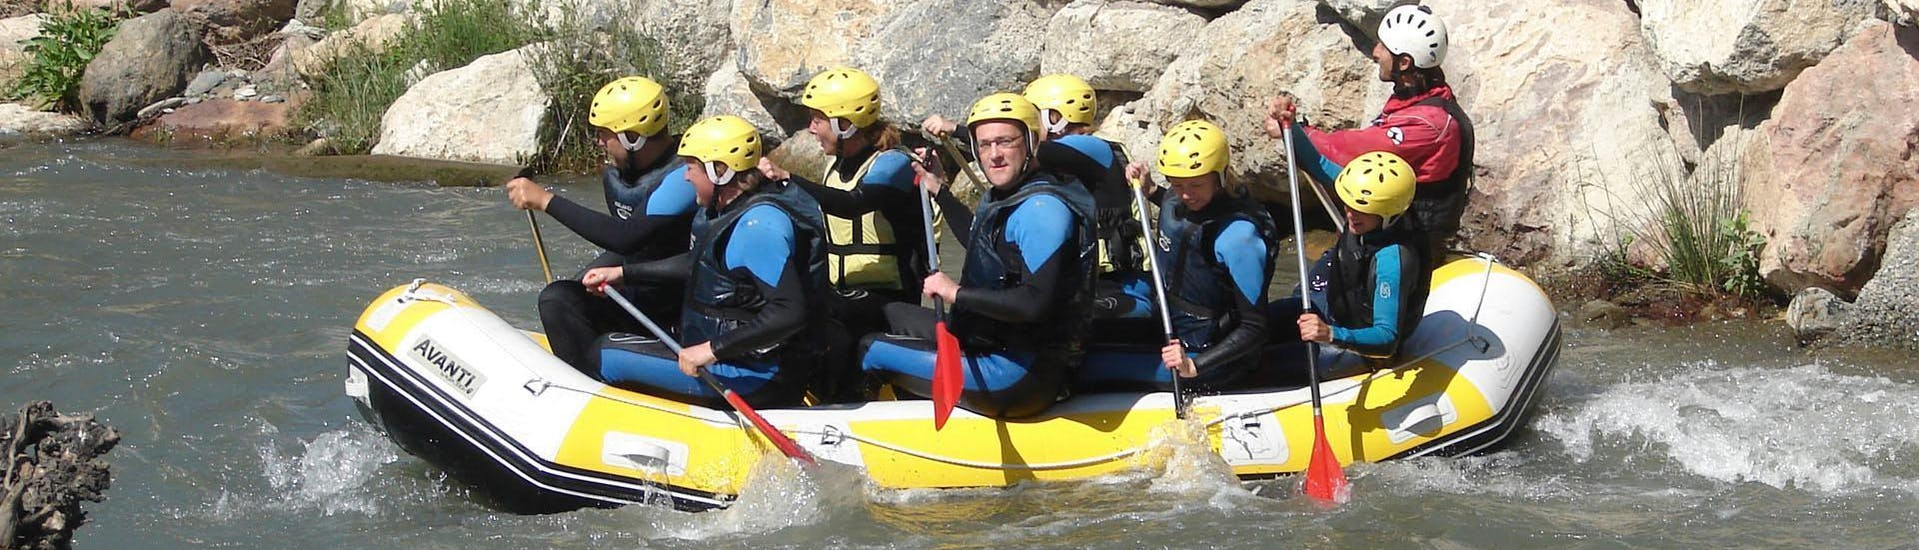 rafting-bachelor-party---rio-guadalfeo-tropical-extreme-hero